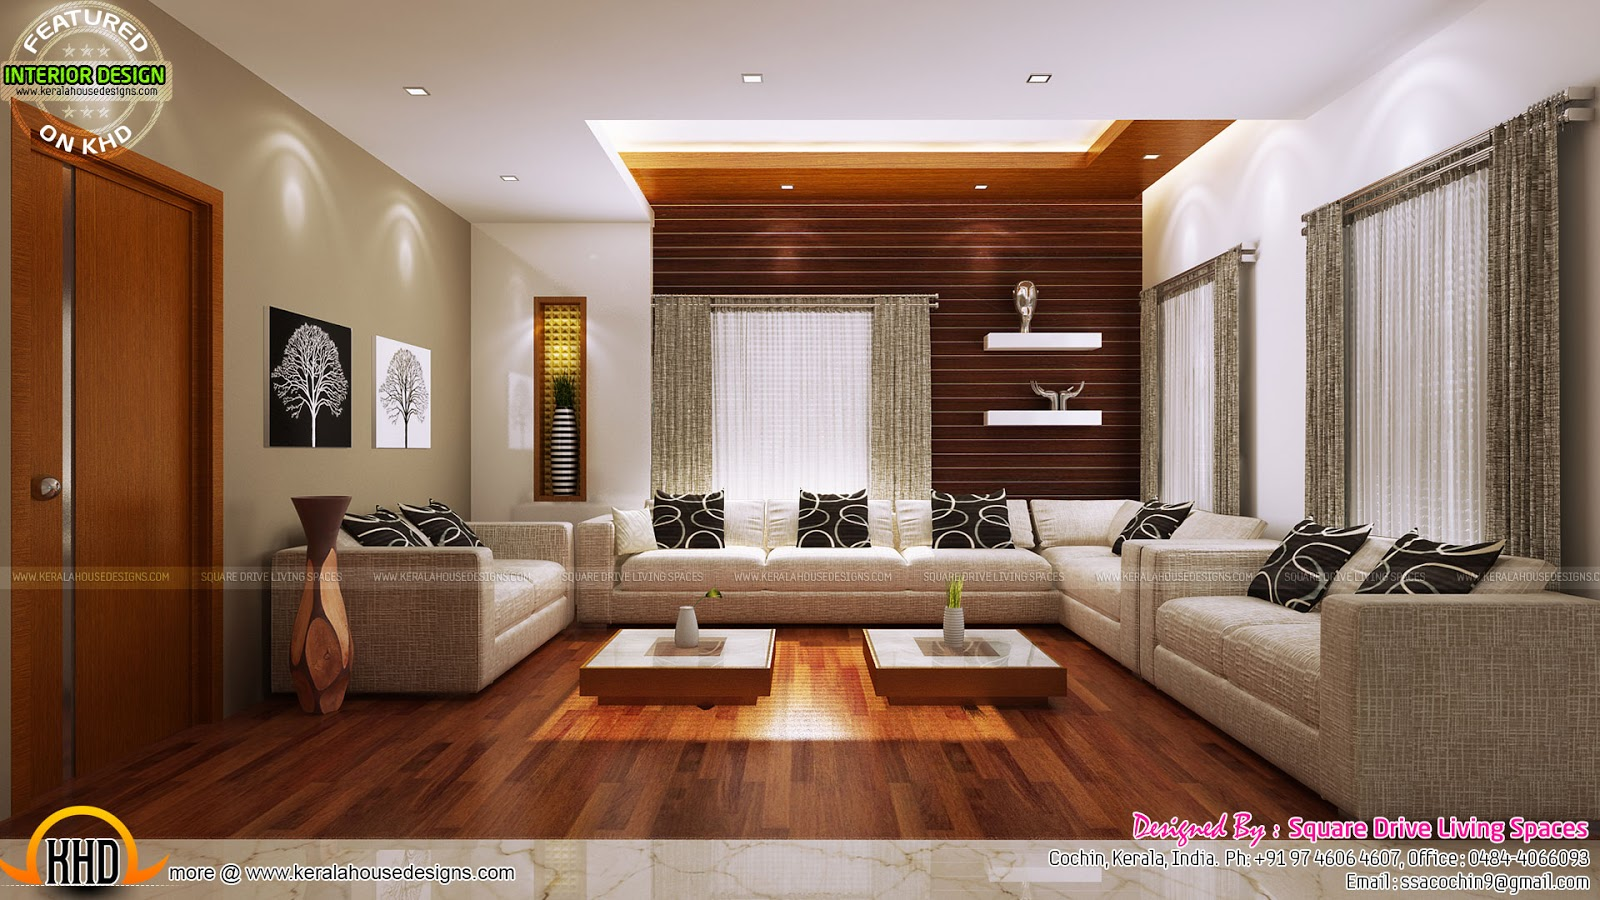 Excellent kerala interior design kerala home design and for Home interior design room